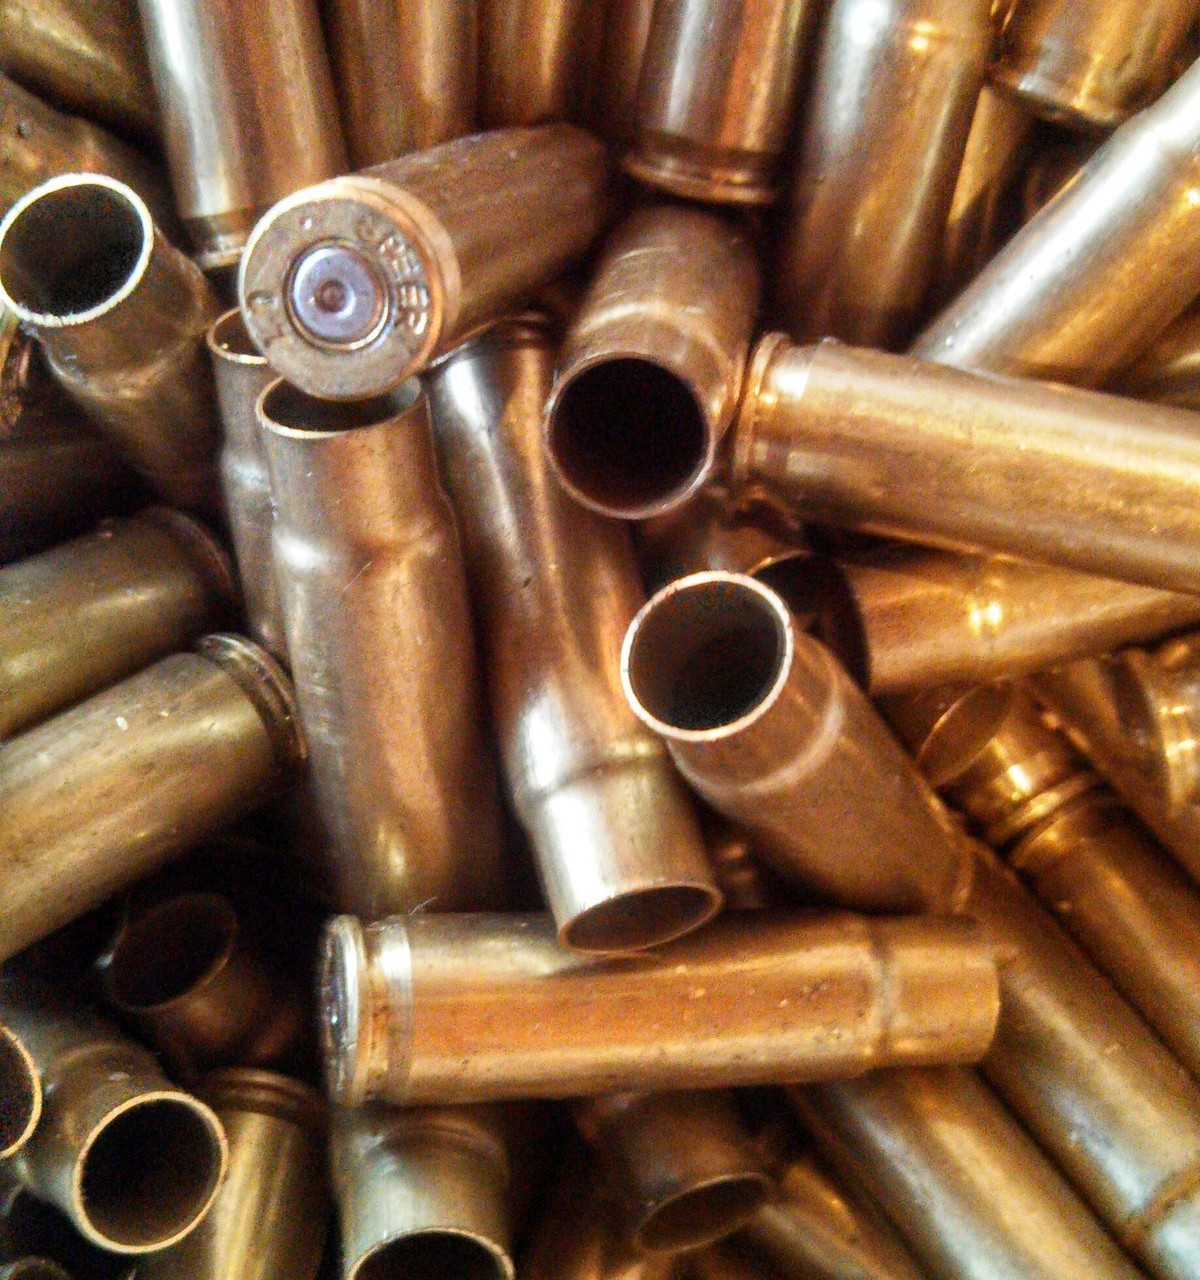 UNPROCESSED 300 BLACKOUT BRASS (100 PIECES)